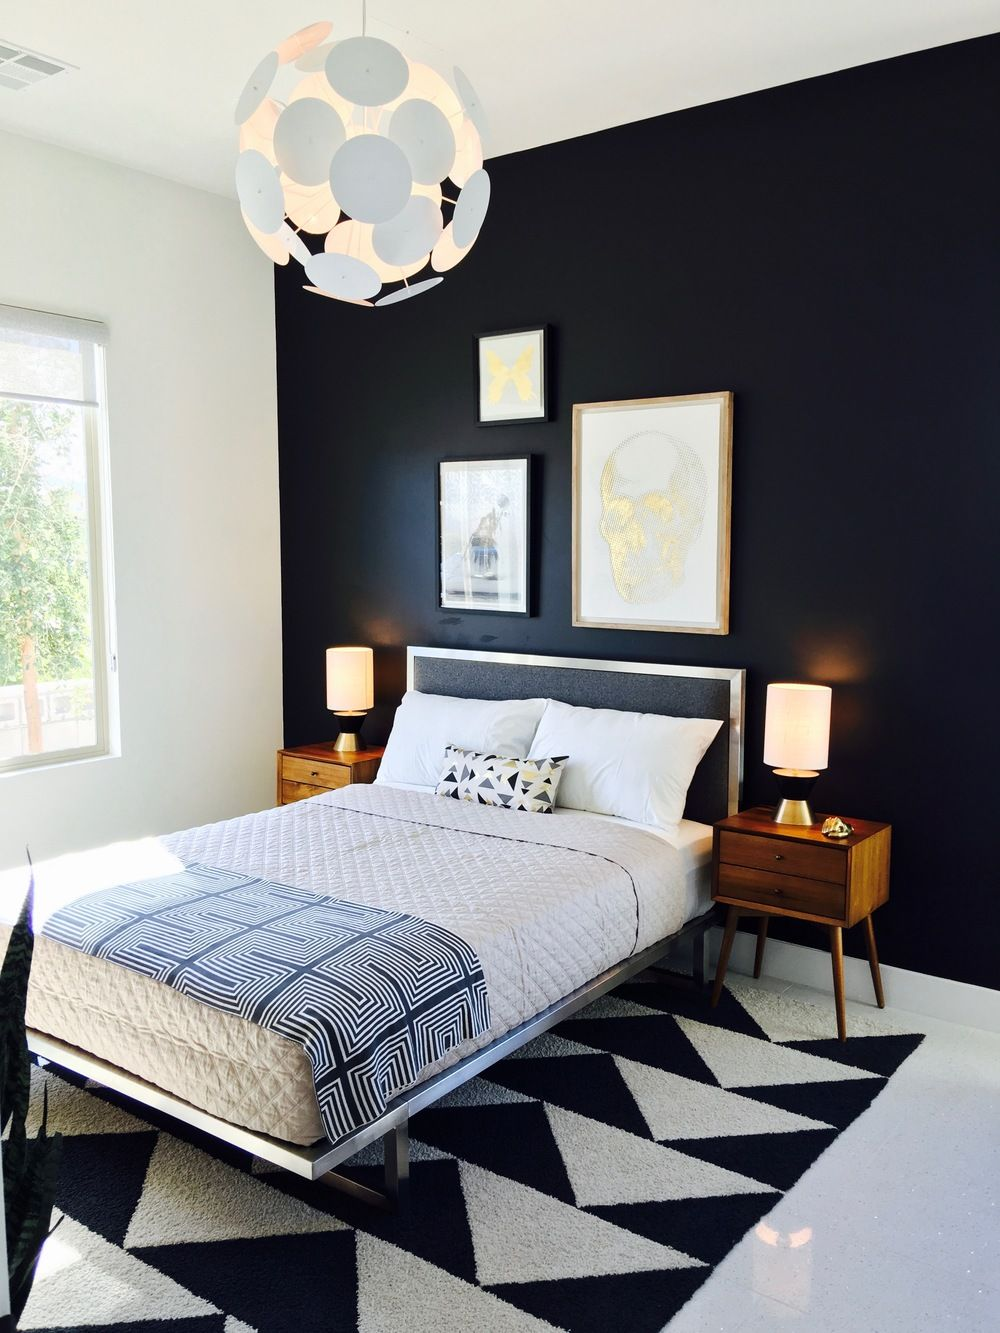 Kids Bedroom Black And White modern bedroom. mid-century bedroom. black and white bedroom. flor